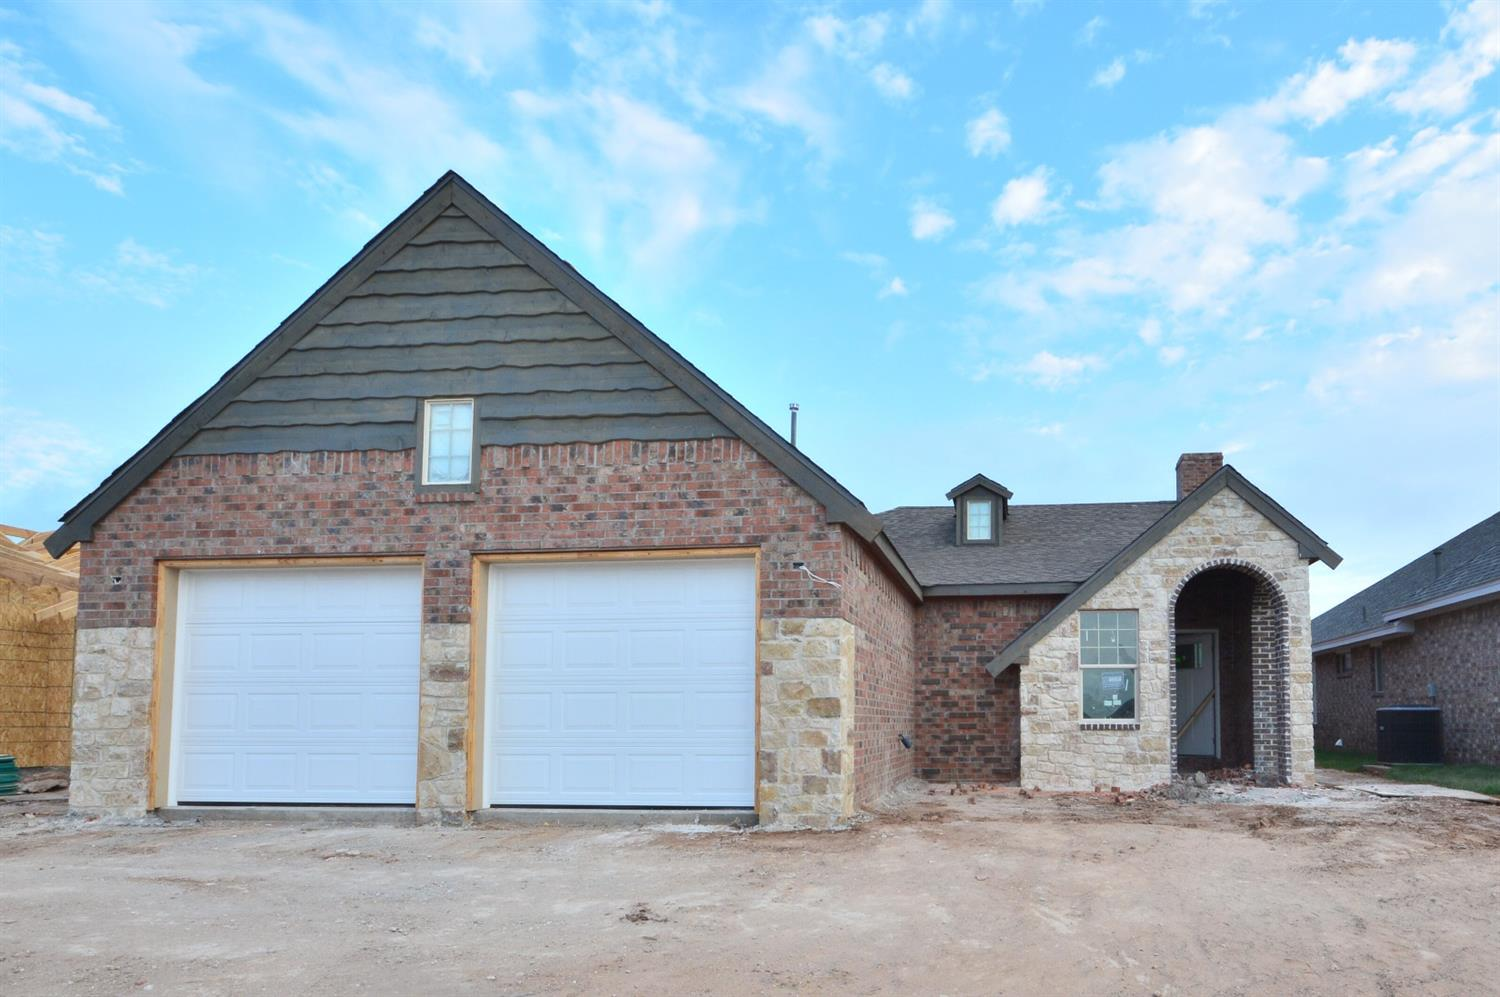 New Construction Ventura Homes 4 Bedroom, 2 Bath, 2 Car Garage with Covered Patio on Cul-de-Sac in Fox Ridge has what you have been looking for! Open floor plan with Vaulted Ceiling, Fireplace & tons of natural light! Kitchen offers Spacious Granite Island w/Pendant Lighting, Pantry, Stainless Steel Appliances including Microwave & Gas Range! Isolated Master Suite, Double Granite Vanities, Walk-in Closet, Tiled Shower & Soaking Tub! Guest Bedrooms offer Special Ceilings & walk-in closets! Fenced Backyard with Covered Patio, Sprinklers & Sod! Additional Features include Foam Insulation, 2 inch Faux Wood Blinds, Designer Hardware, Spacious Walk-in Closets, Built-in Linen Storage in Baths & Laundry, Full Builder's warranty...Cooper ISD! Close to Restaurants, Shopping, Medical Center & University! This one will not last long!